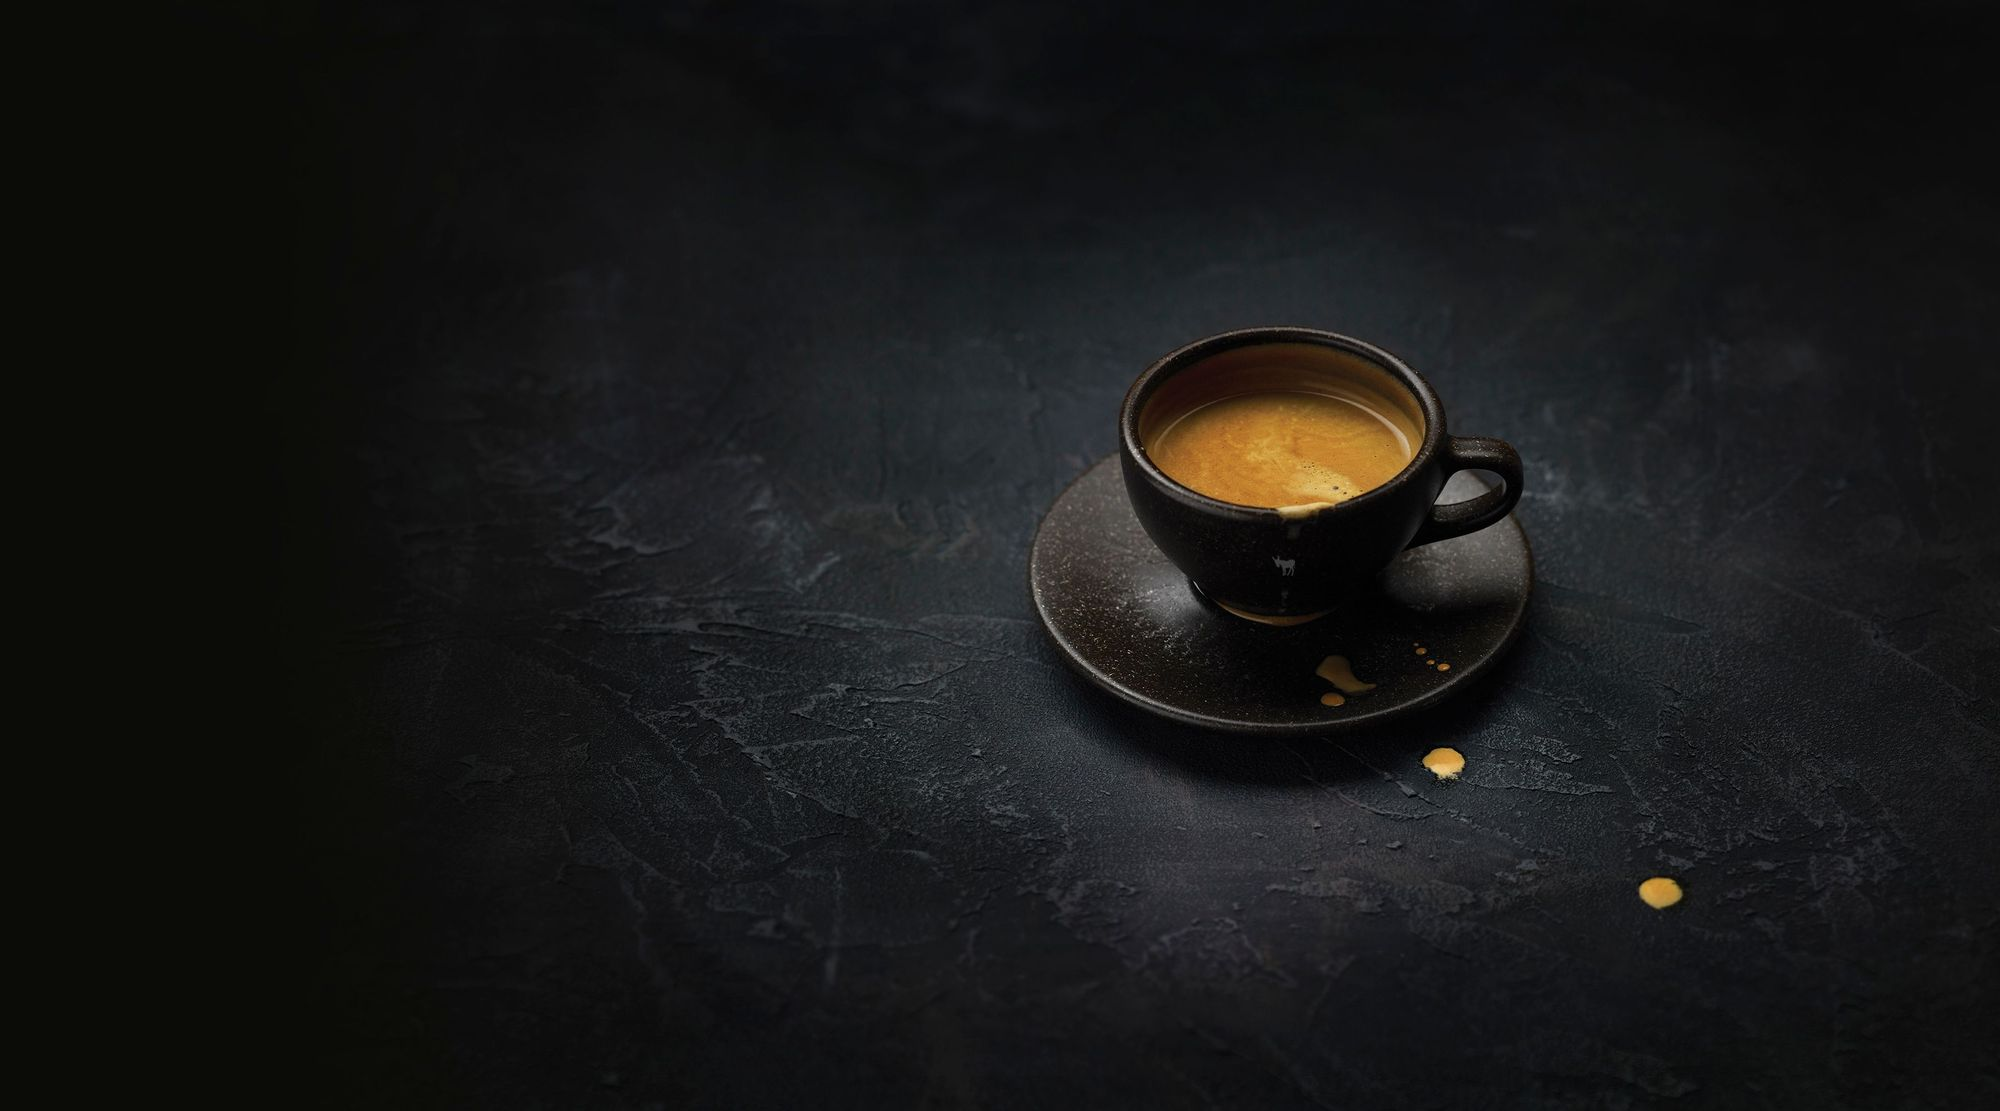 cup of espresso coffee with crema